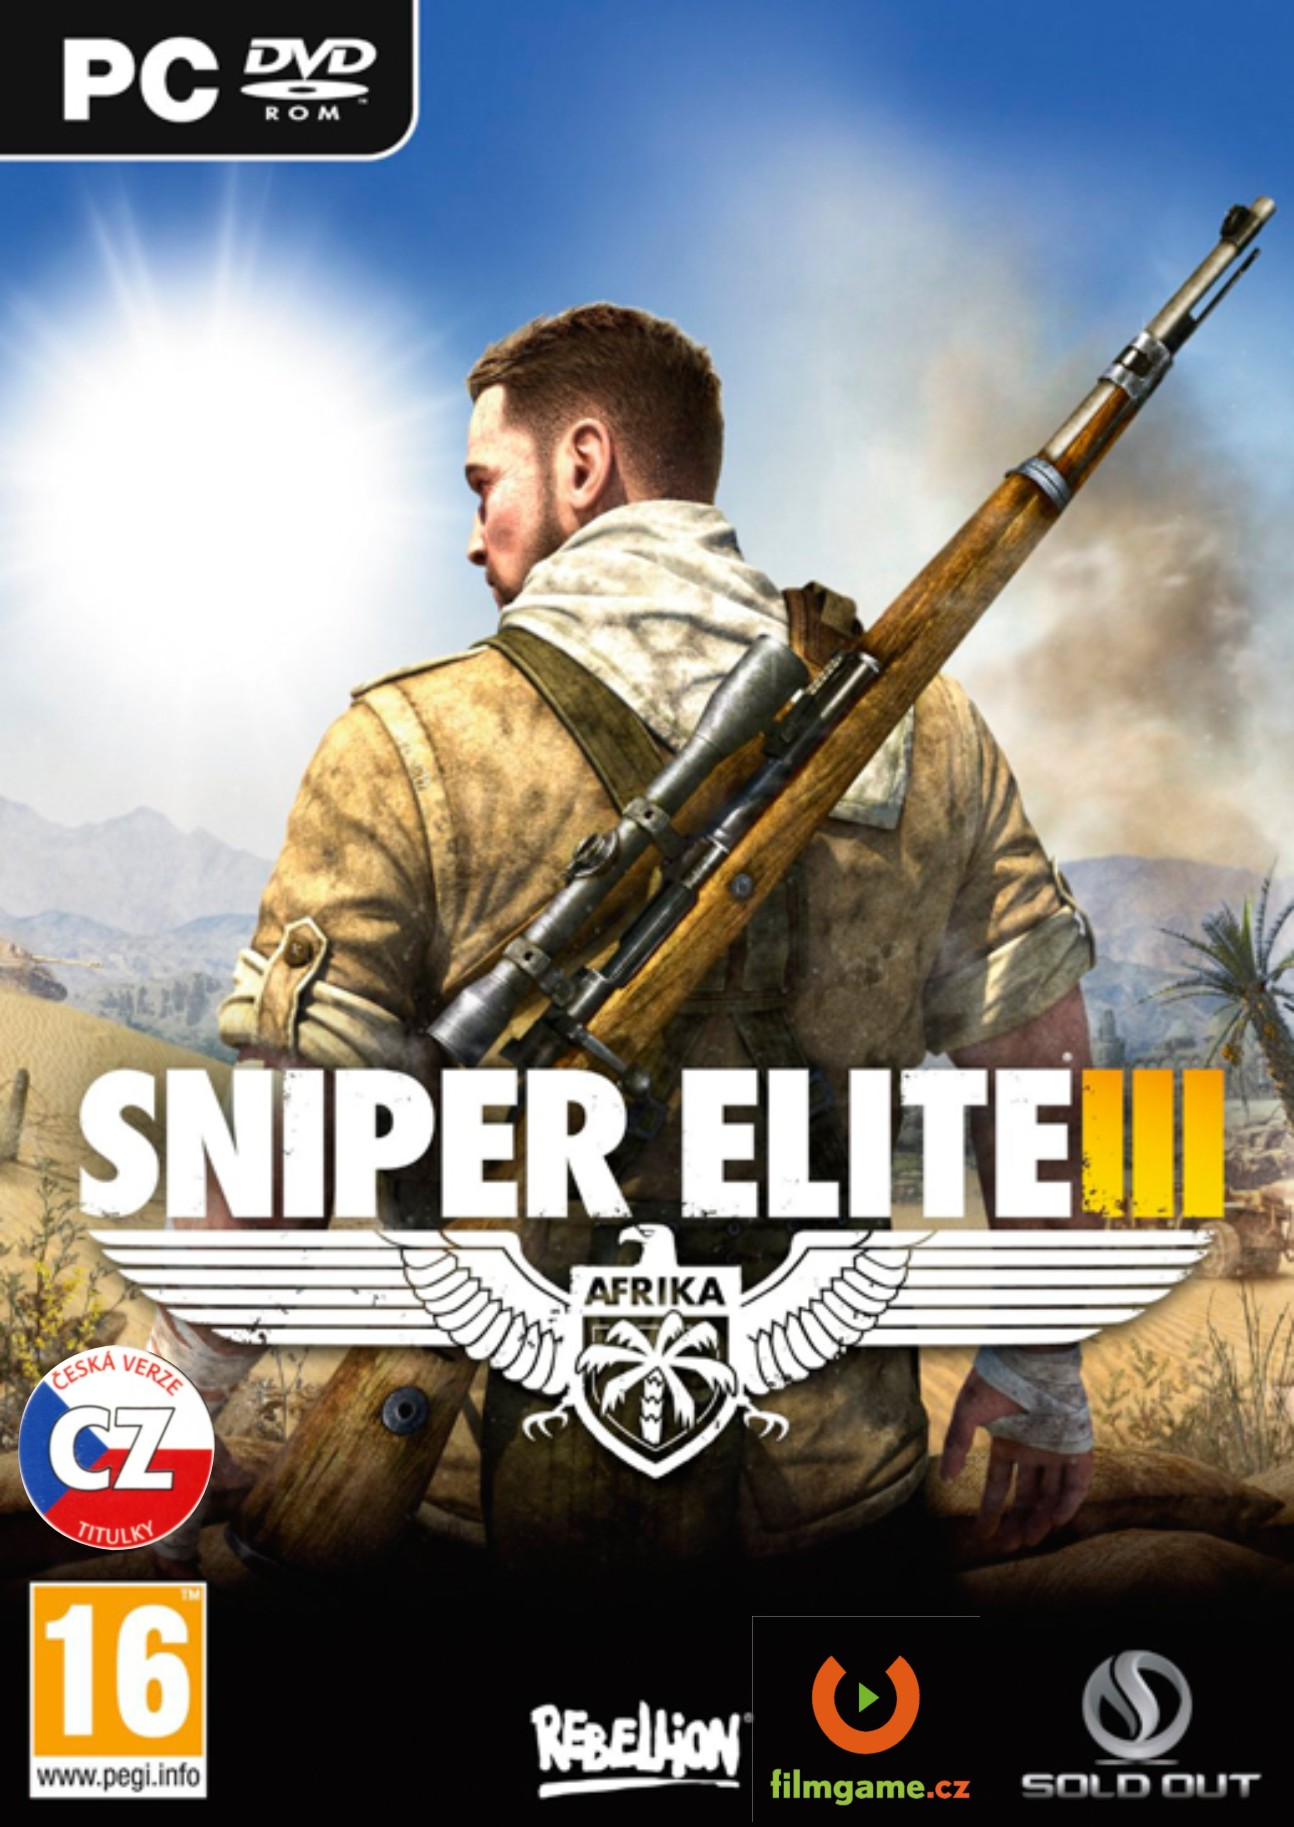 SNIPER ELITE 3 CZ - PC